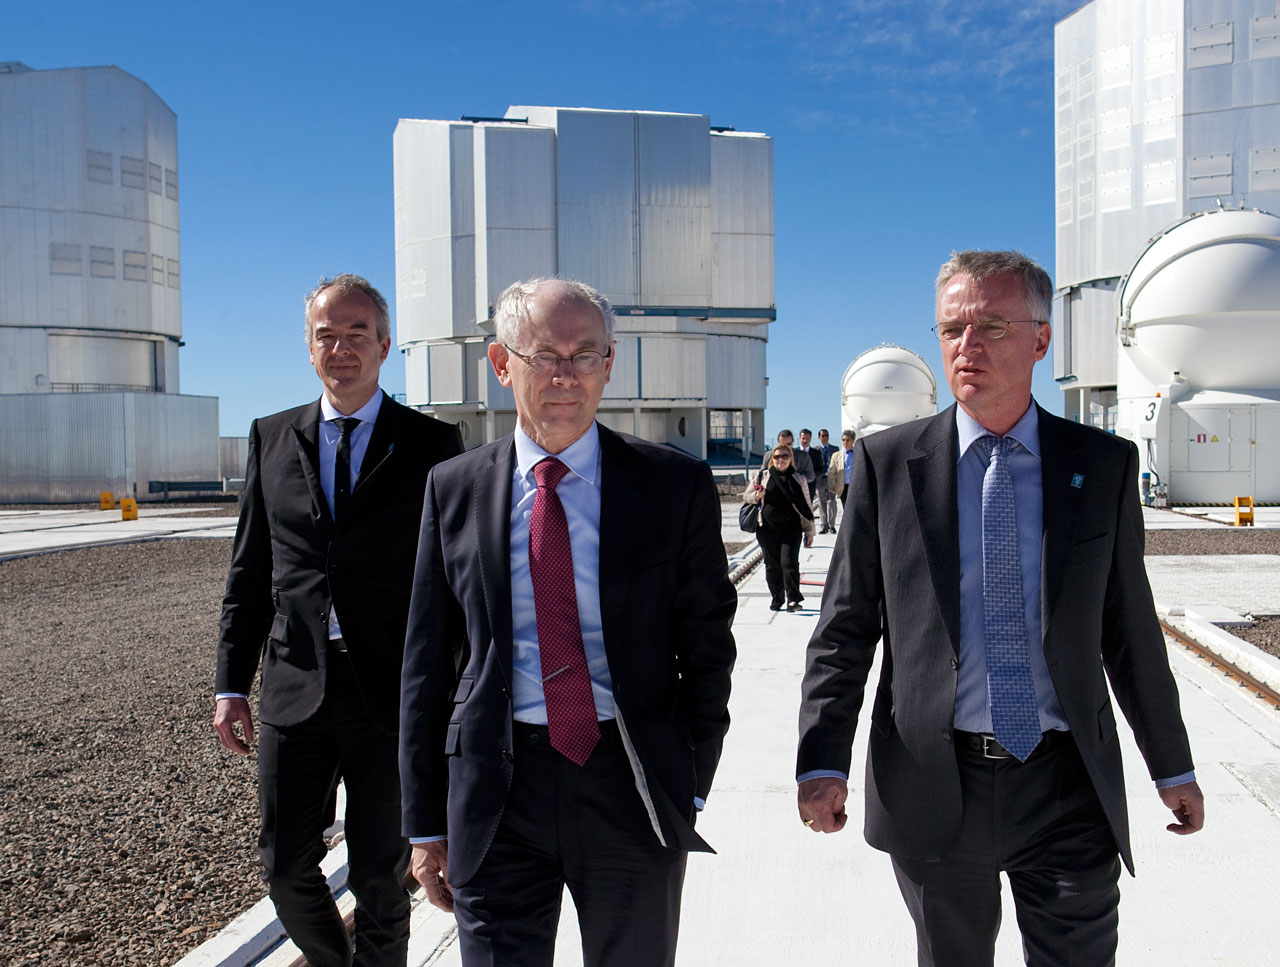 President of the European Council, Herman Van Rompuy, during a visit to the Paranal Observatory